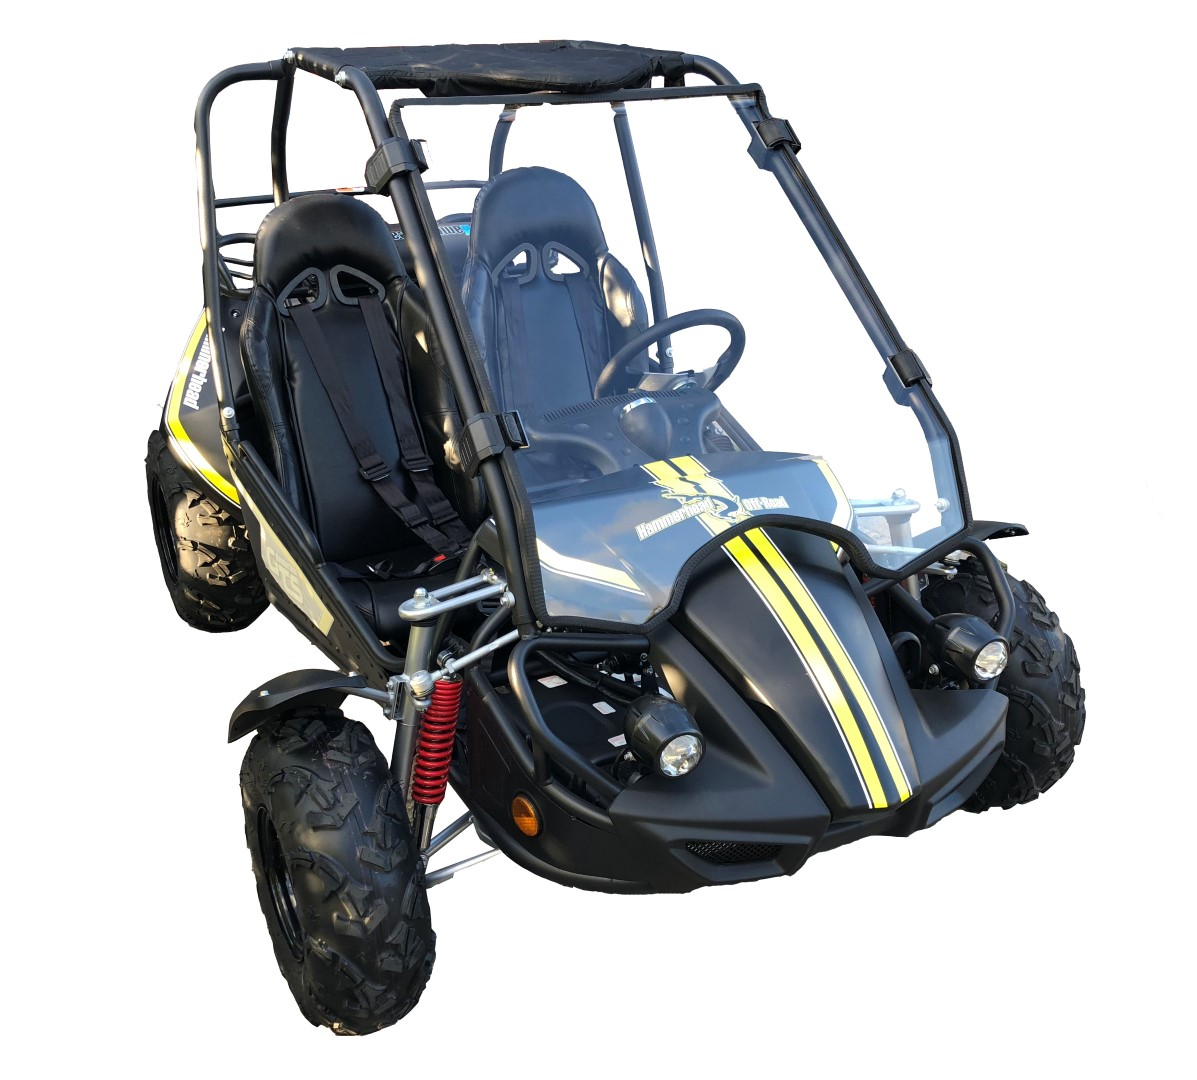 Frame Accessories | Storm Buggies on